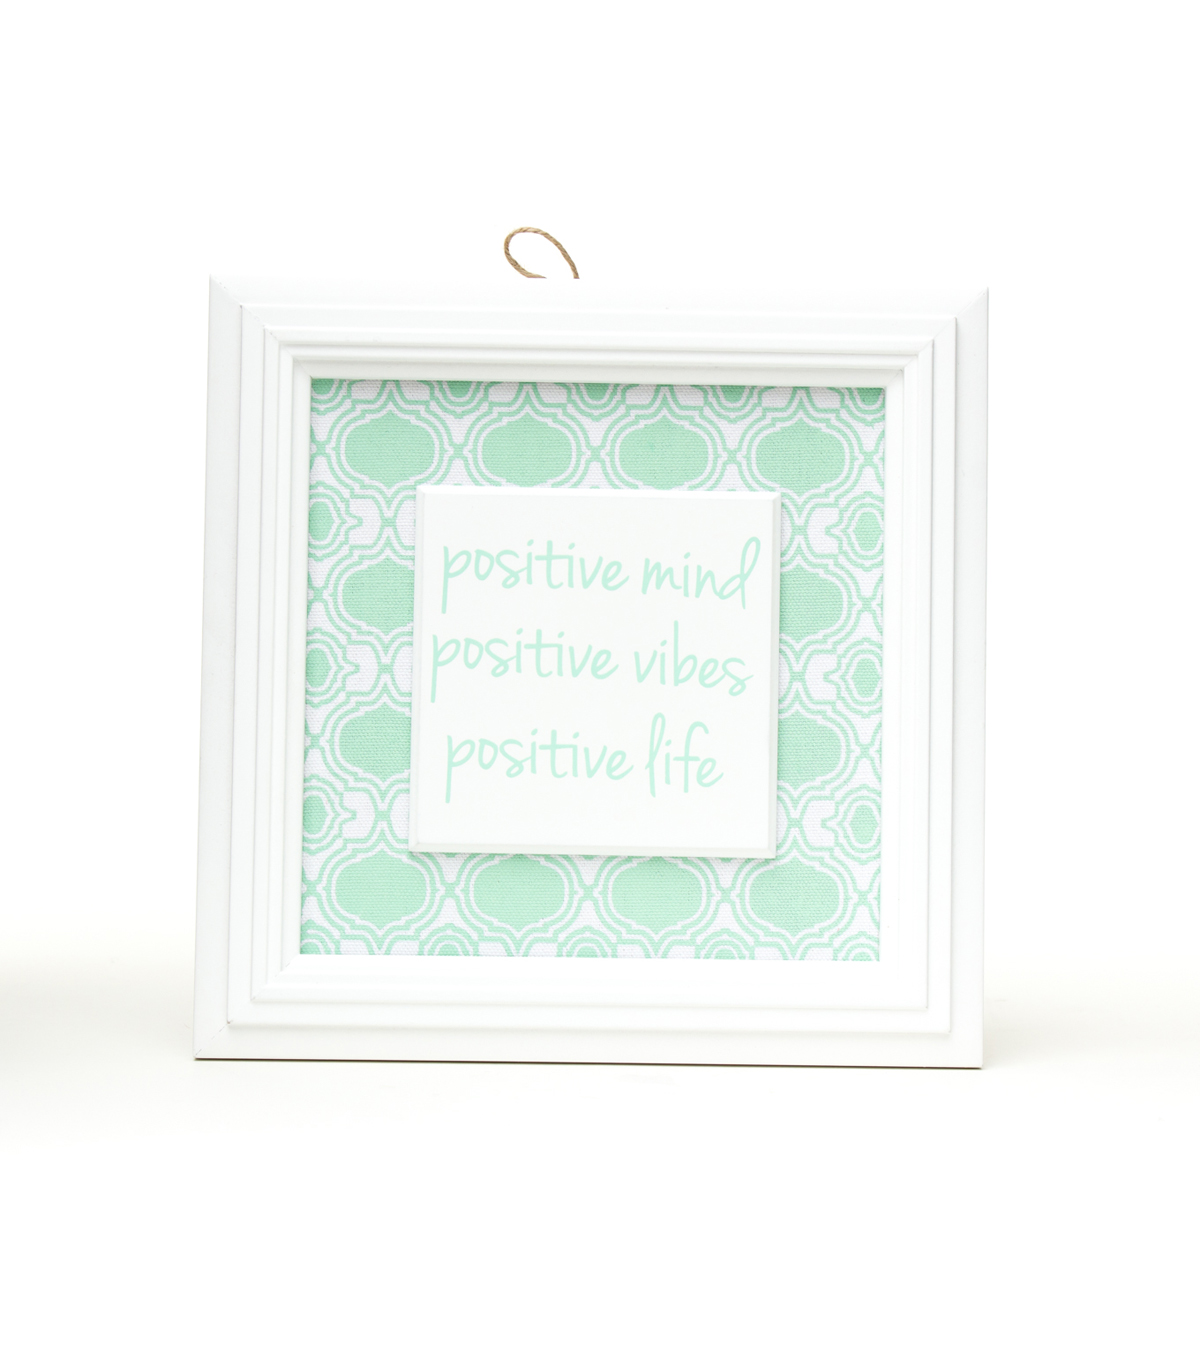 In The Garden Wall Decor-Positive Mind Positive Vibes Life